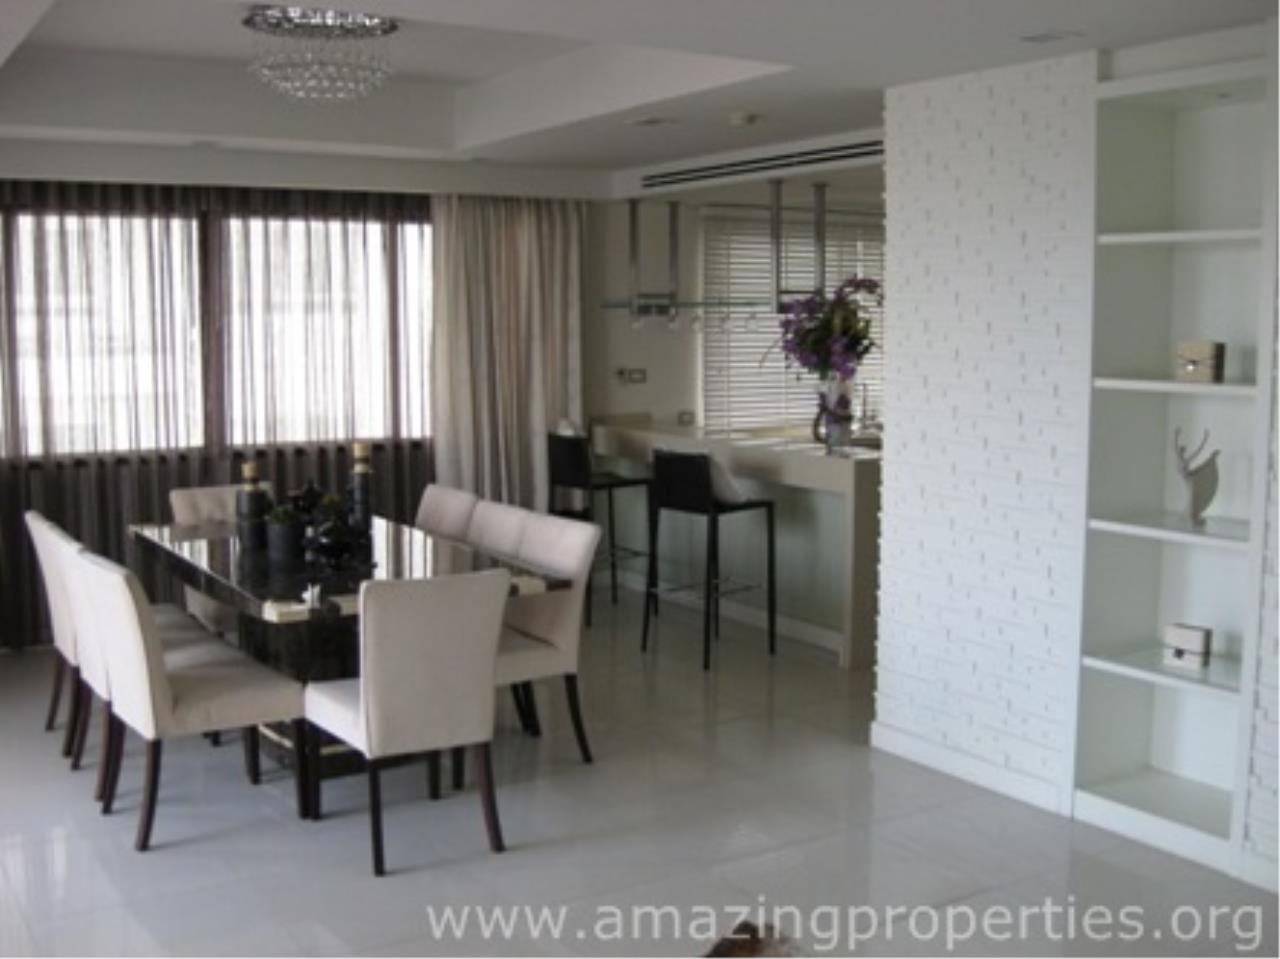 Amazing Properties Agency's 3 bedrooms Apartment for rent/sale 3